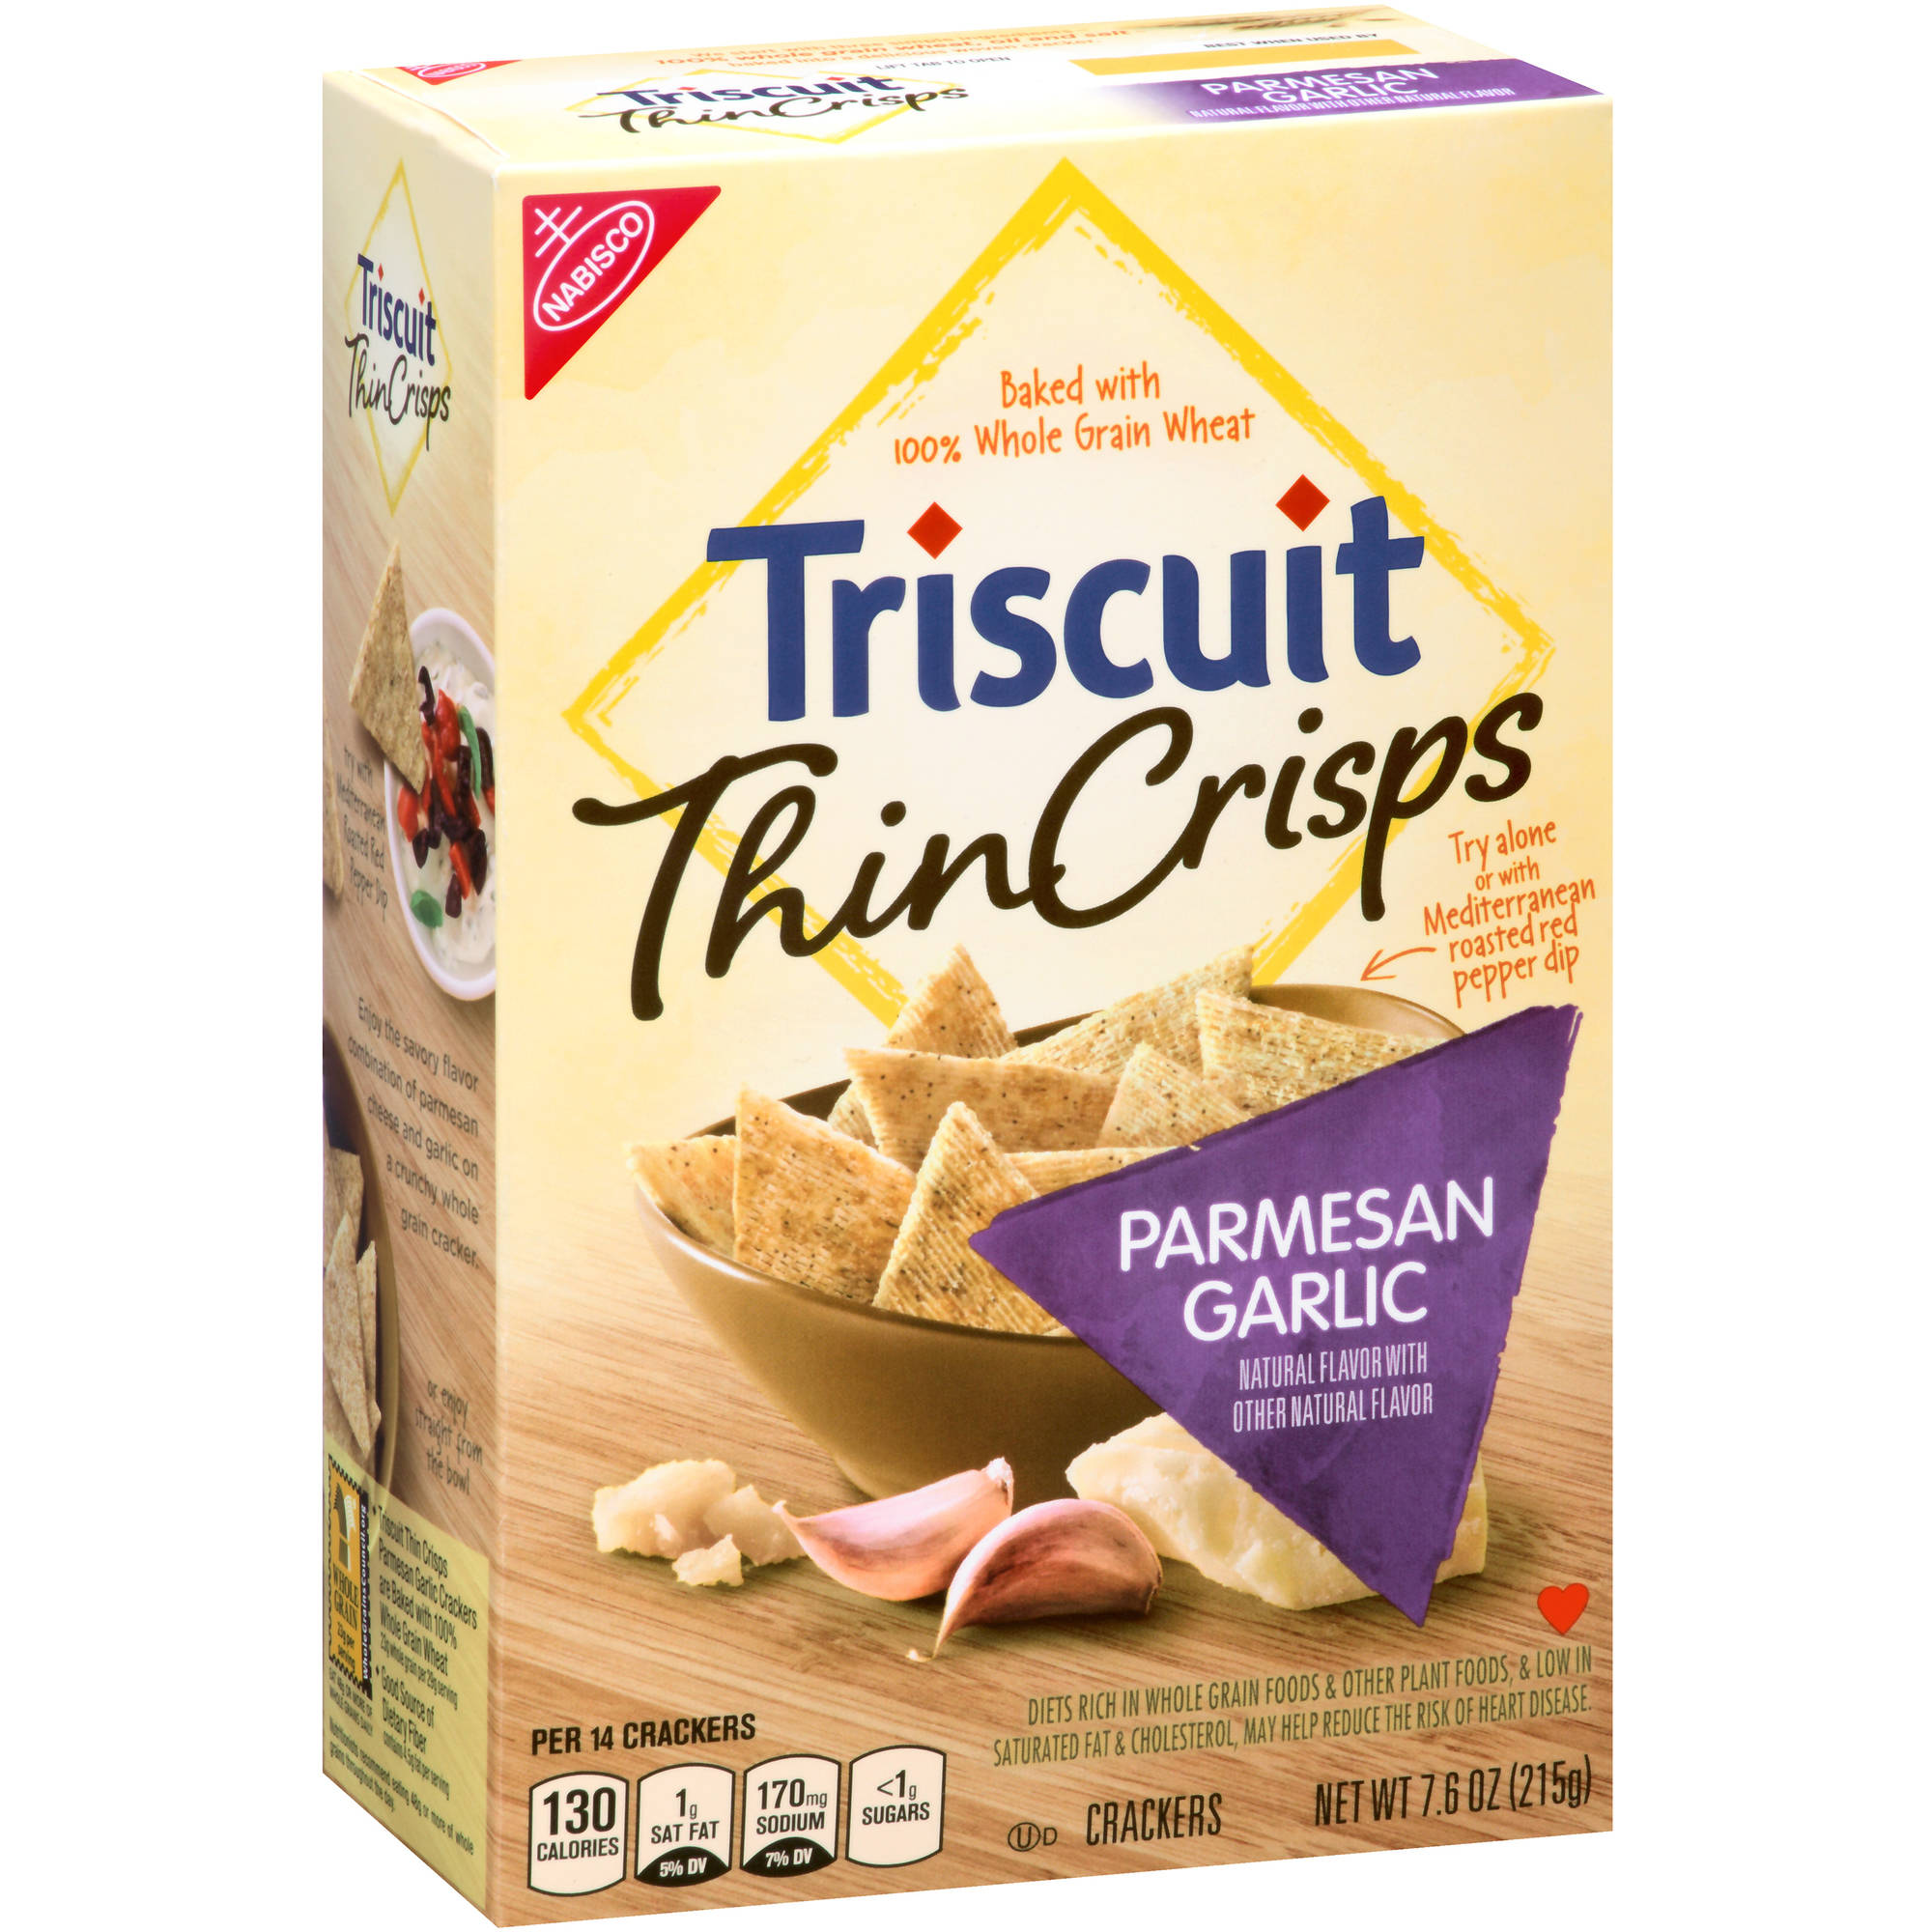 Nabisco Triscuit Thin Crisps Parmesan Garlic Crackers, 7.6 oz